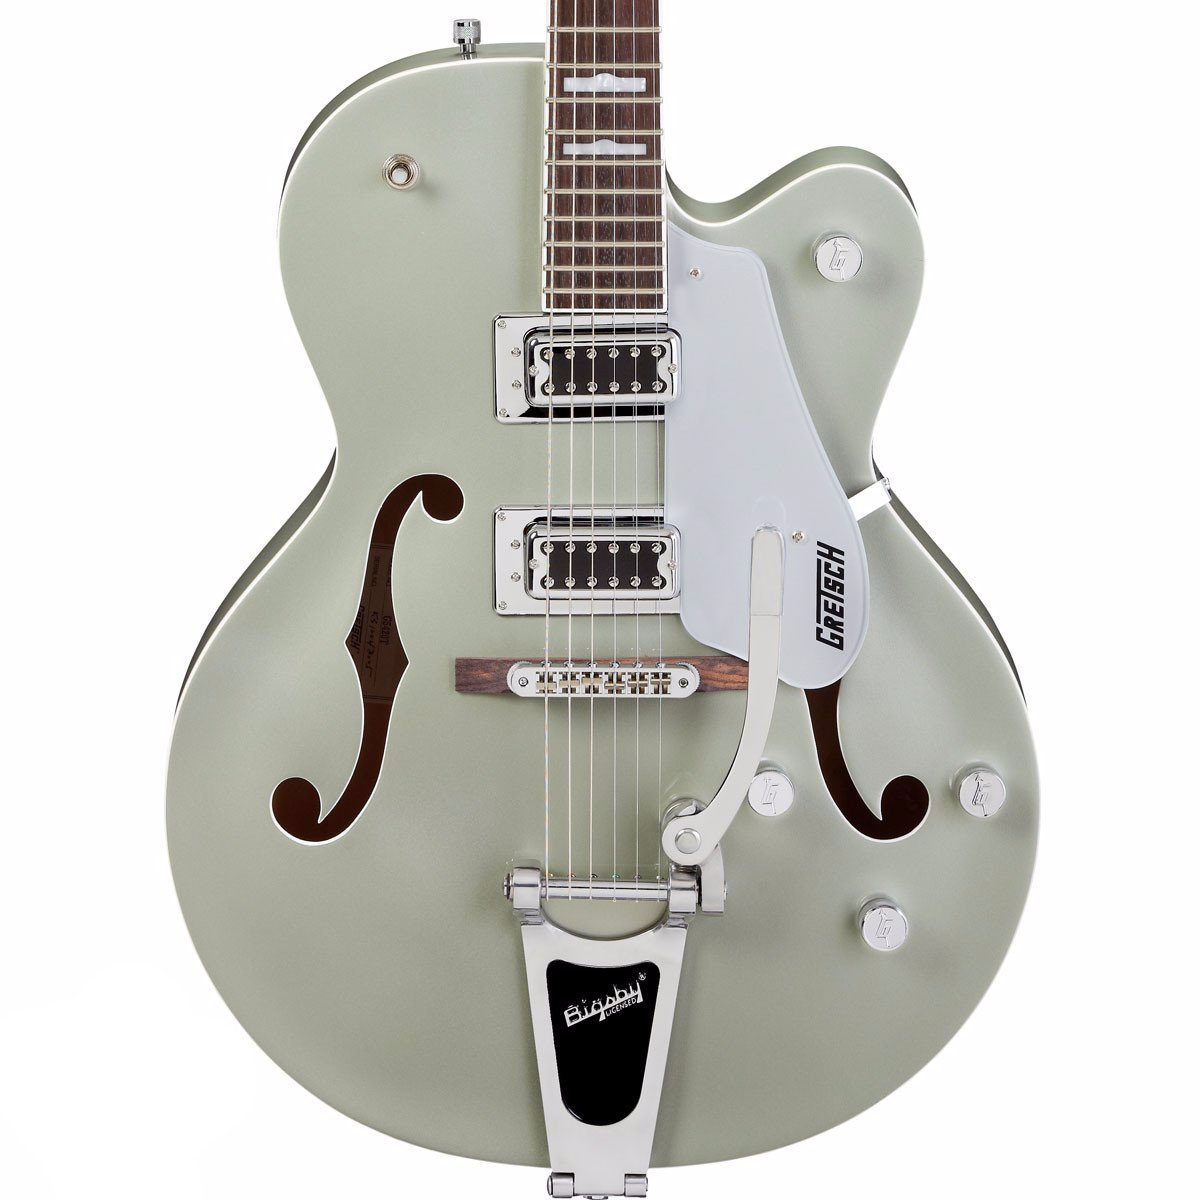 Gretsch G5420T Electromatic Hollow Body w/Bigsby - Aspen Green - Vintage Guitar Boutique - 1